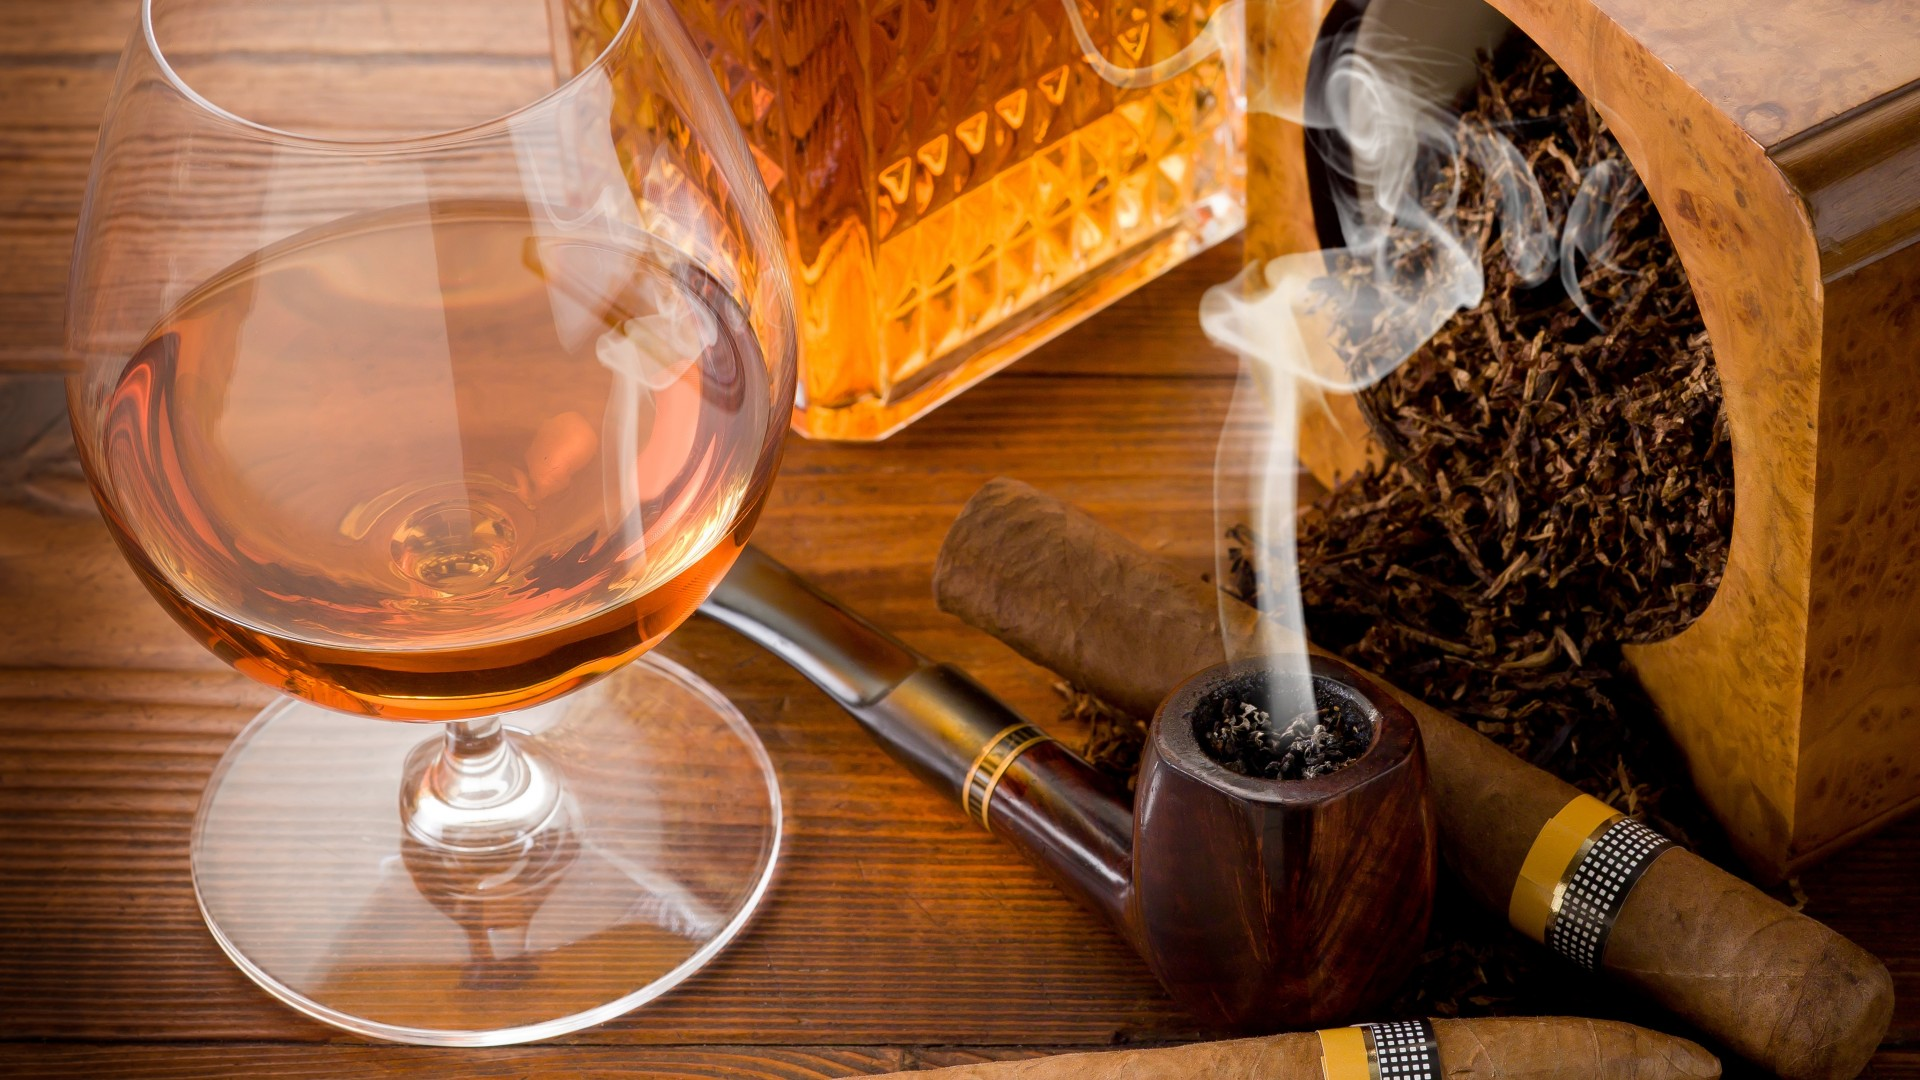 Download-table-glass-brandy-tobacco-cigars-pipe-miscellanea-resolution-1920x1080-wallpaper-wp3804827